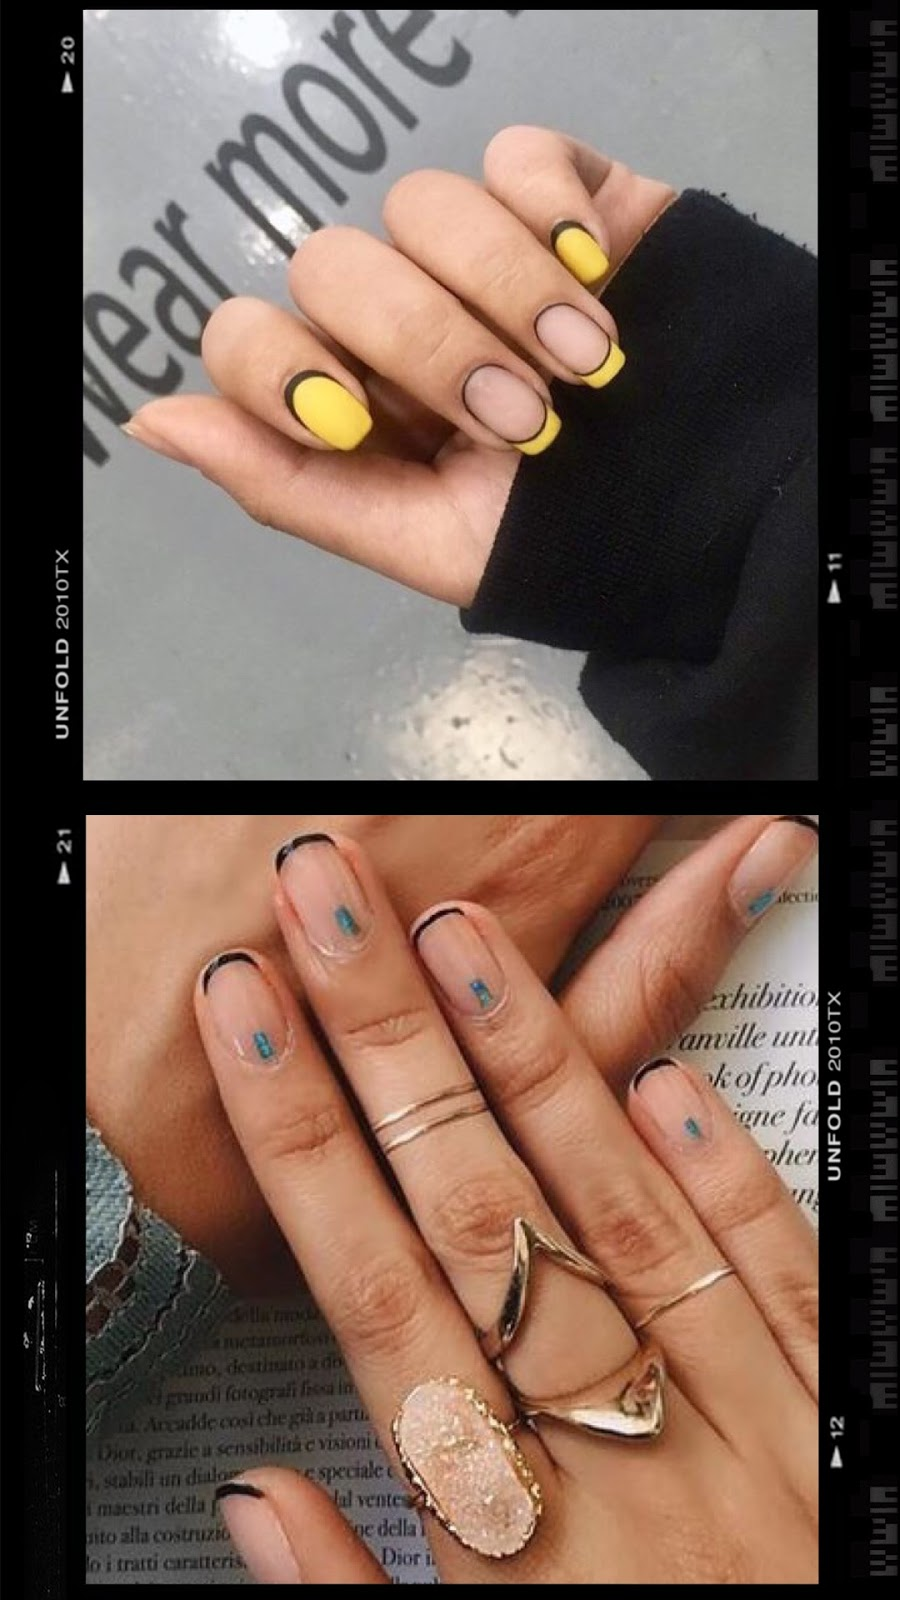 Nails 2019 Justyna Polska Fashionblogger Styling Makeup Artist